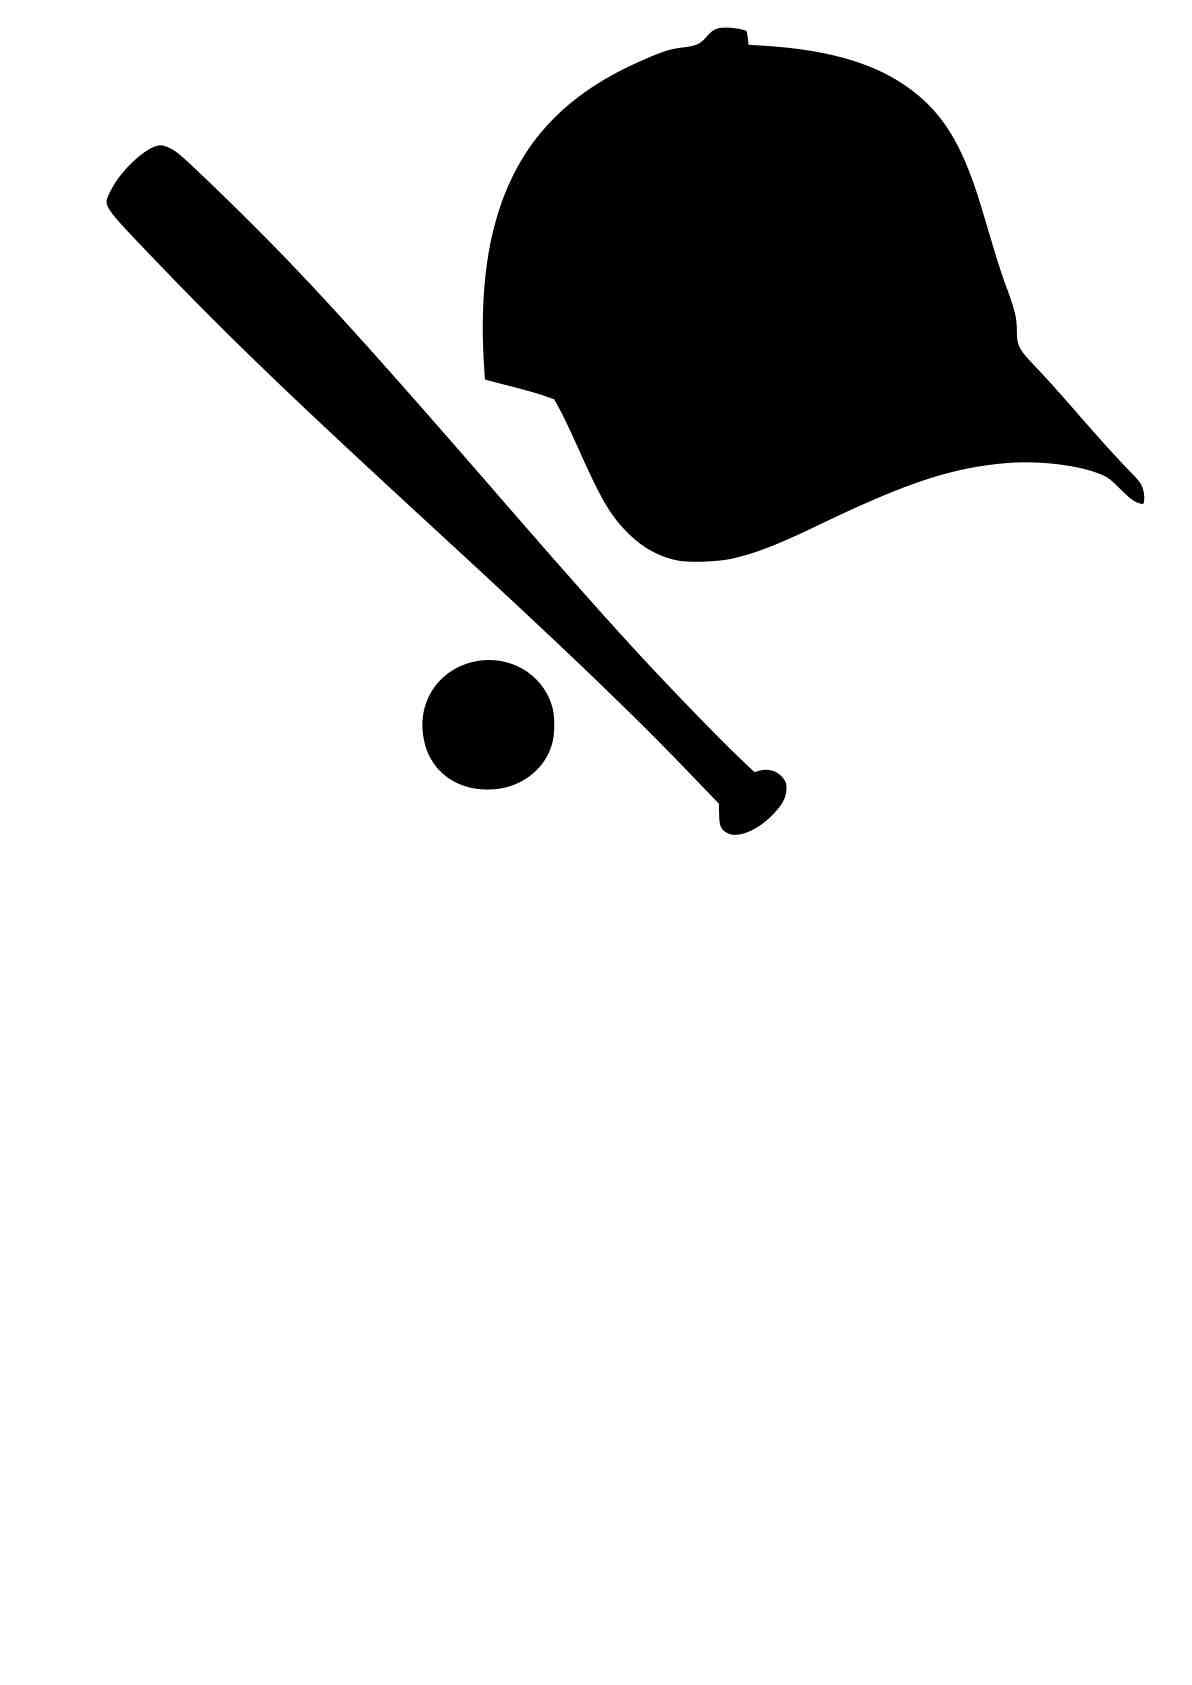 Baseball bat svg. Free download hat ball